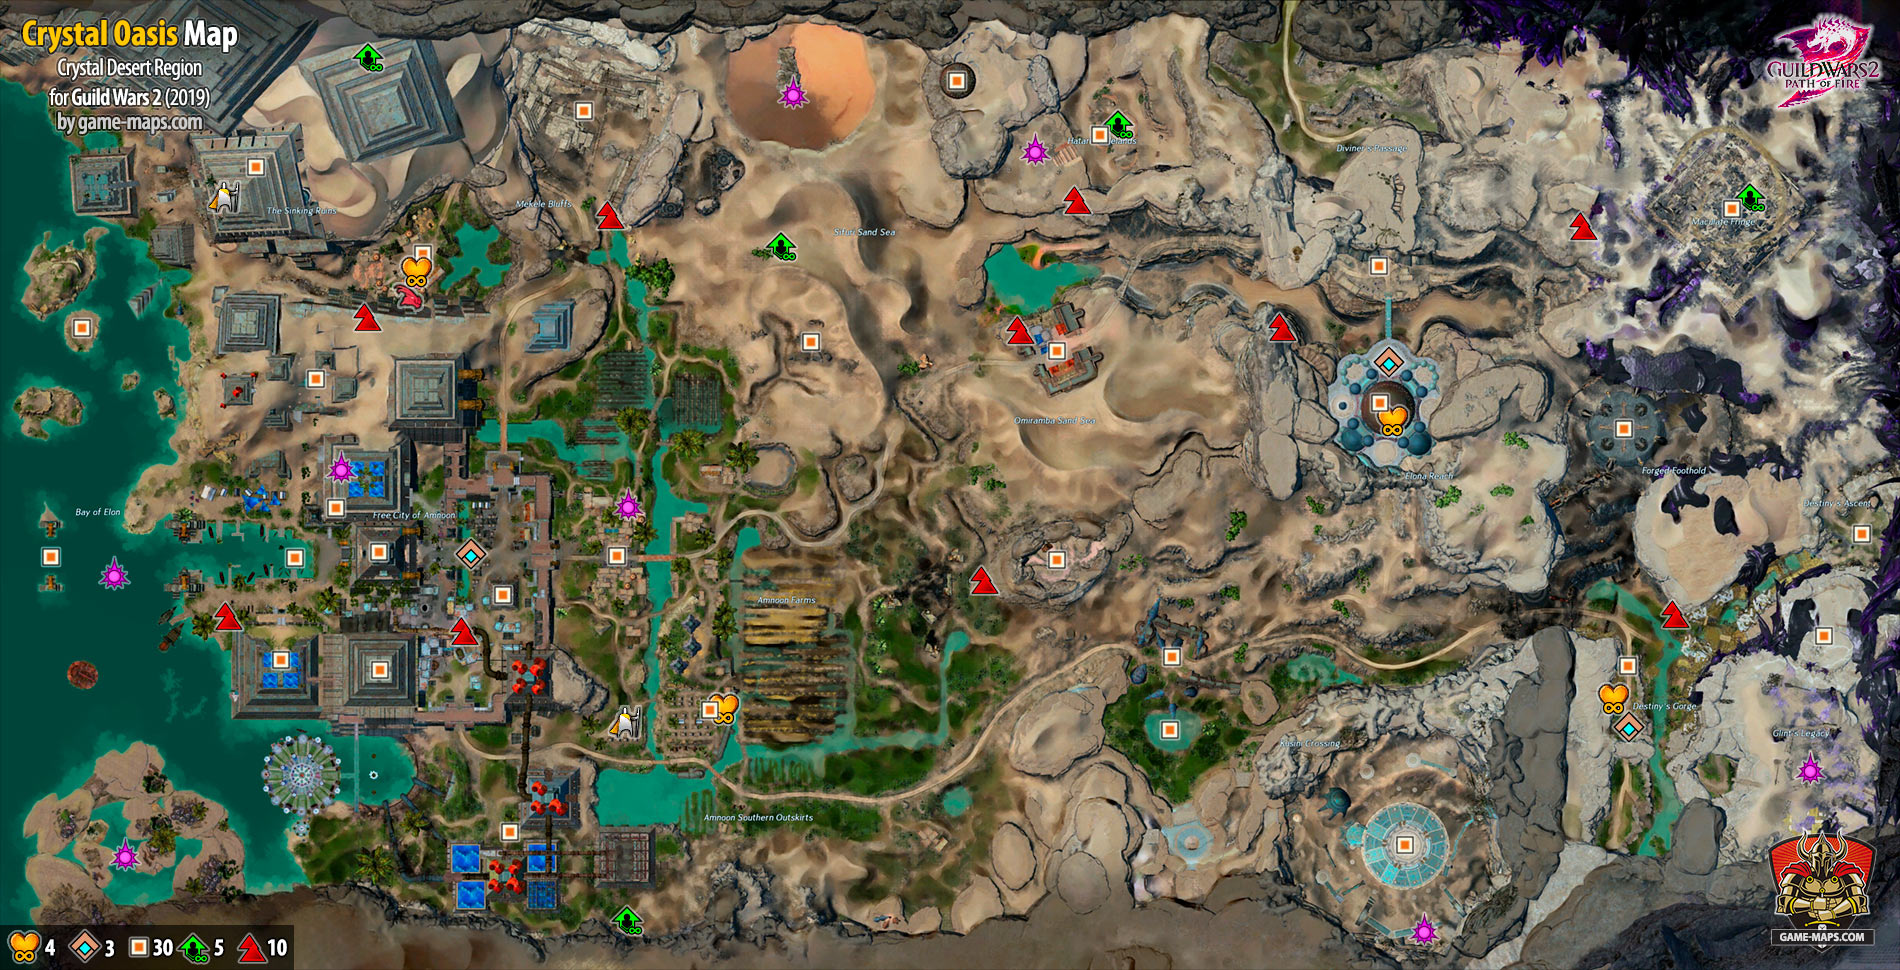 Guild Wars 2 Path Of Fire Map Crystal Oasis Map (2019)  Guild Wars 2 | game maps.com